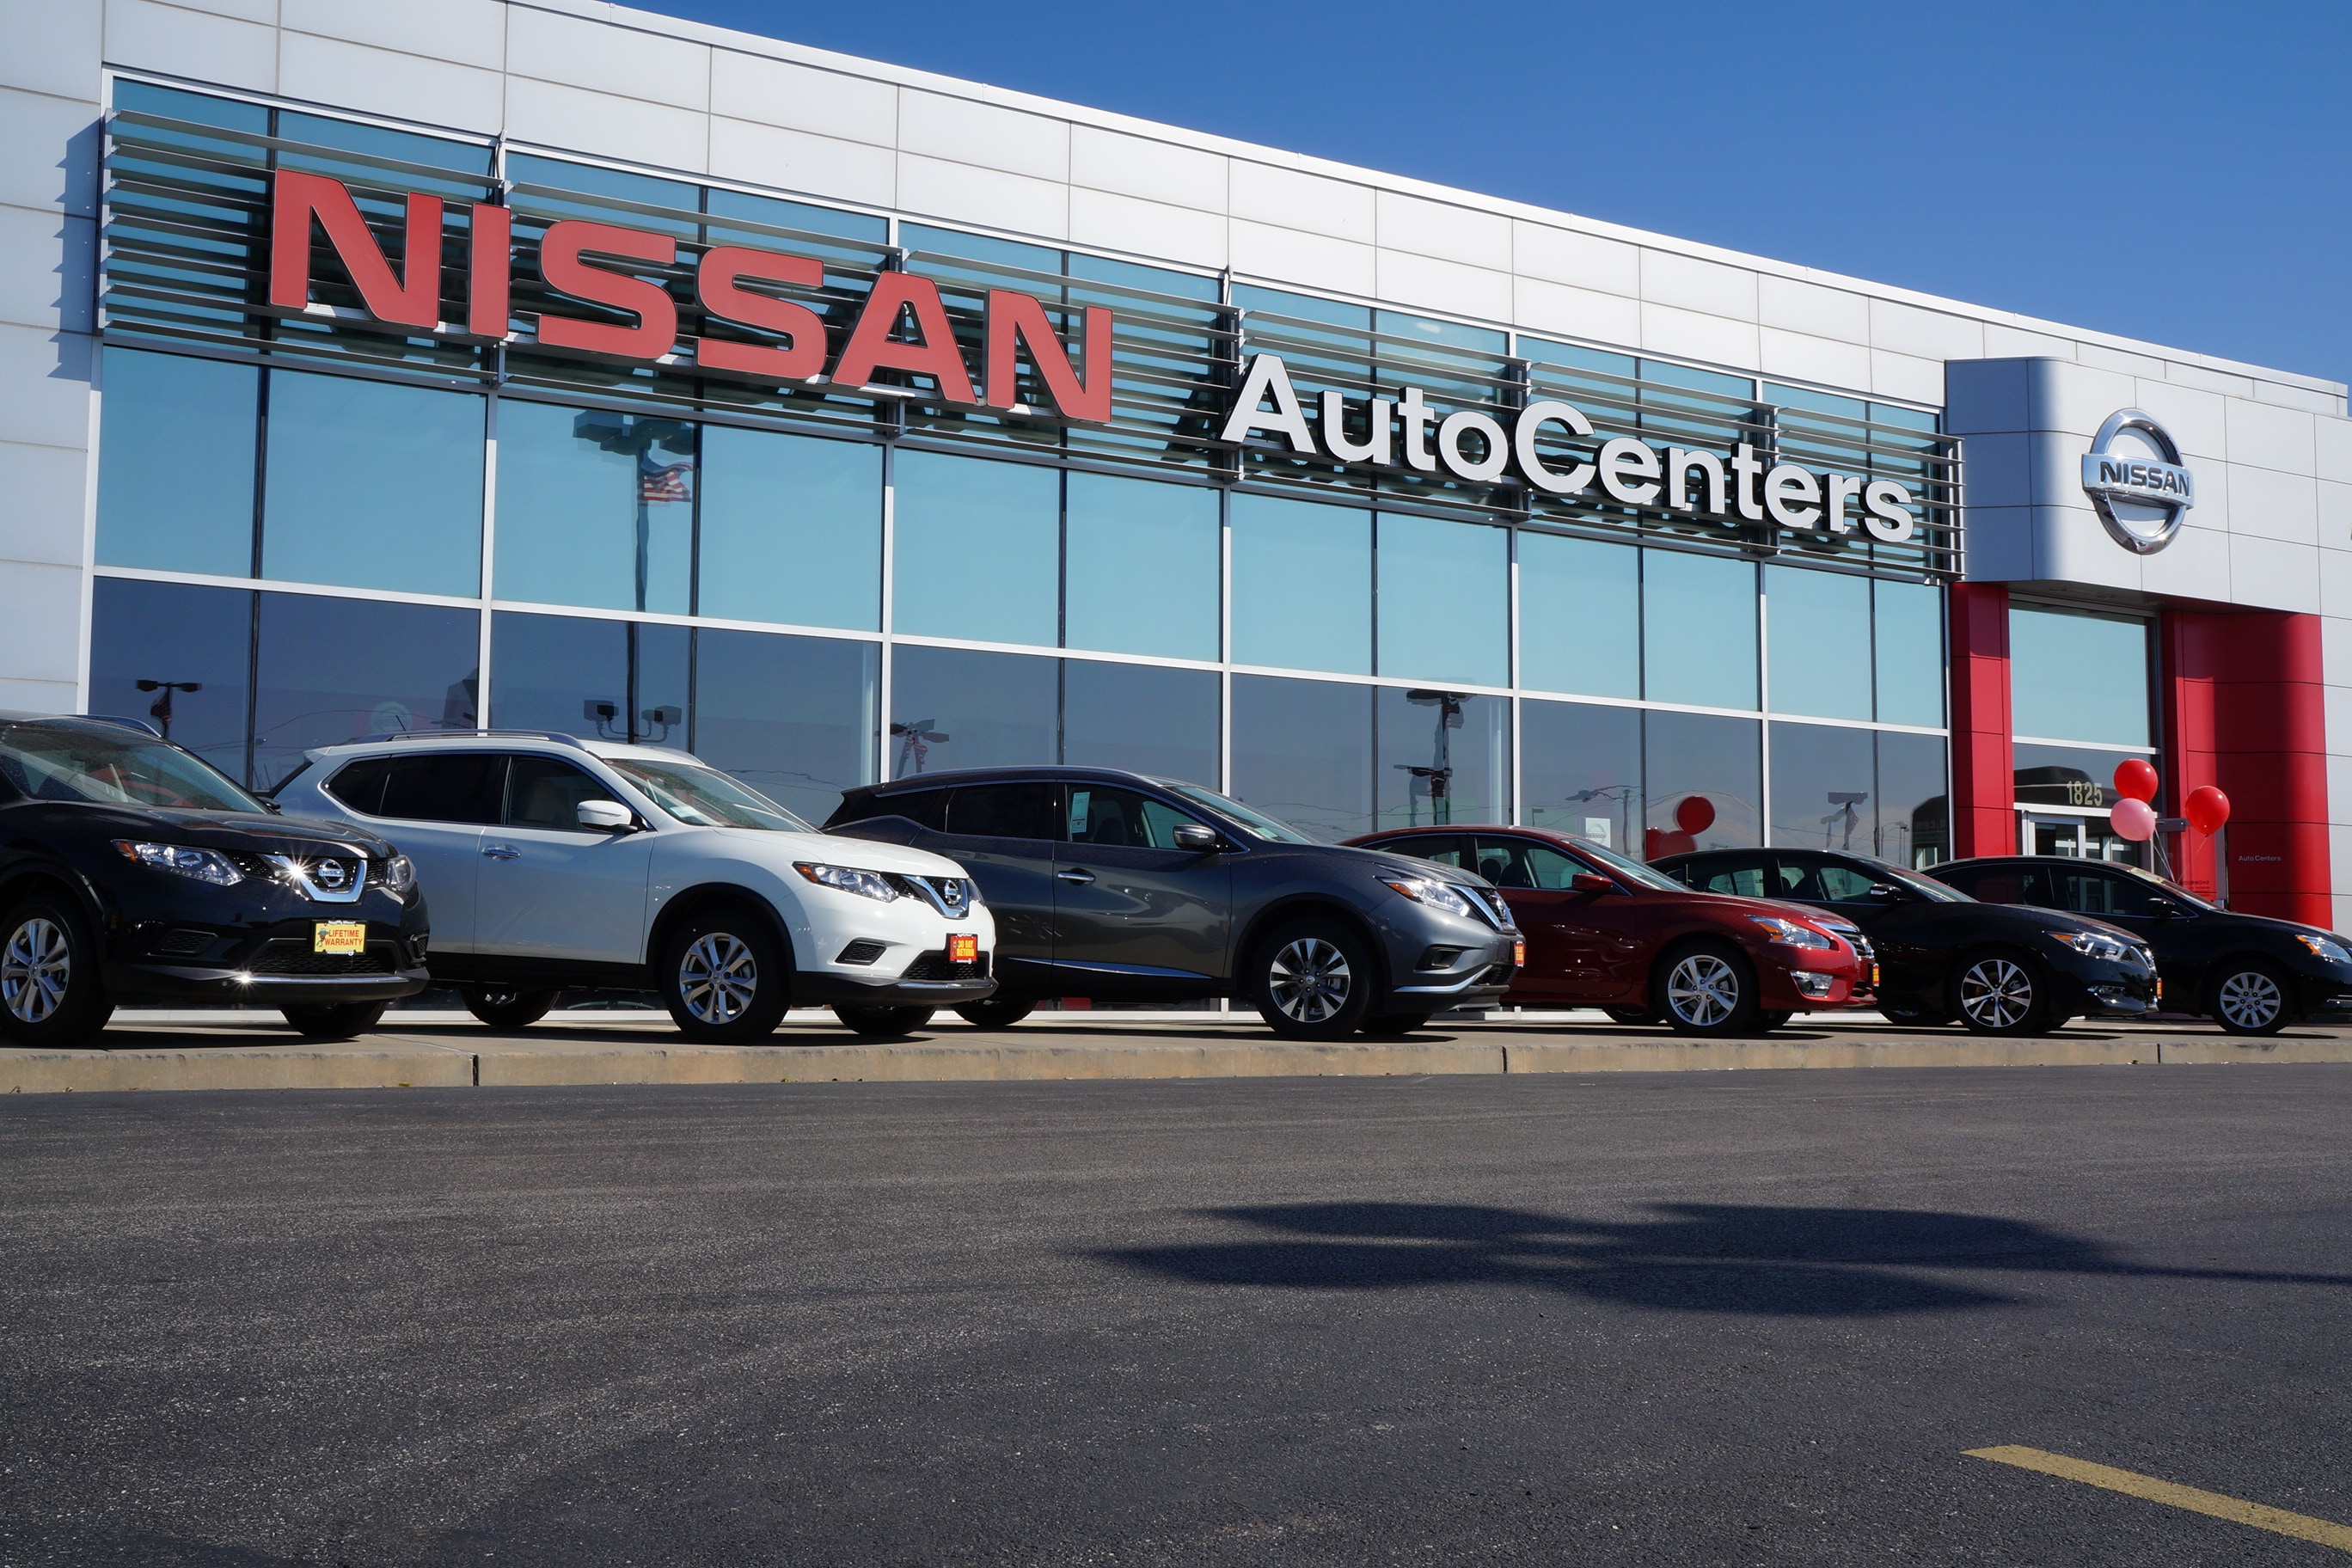 Nissan dealership serving edwardsville il autocenters nissan